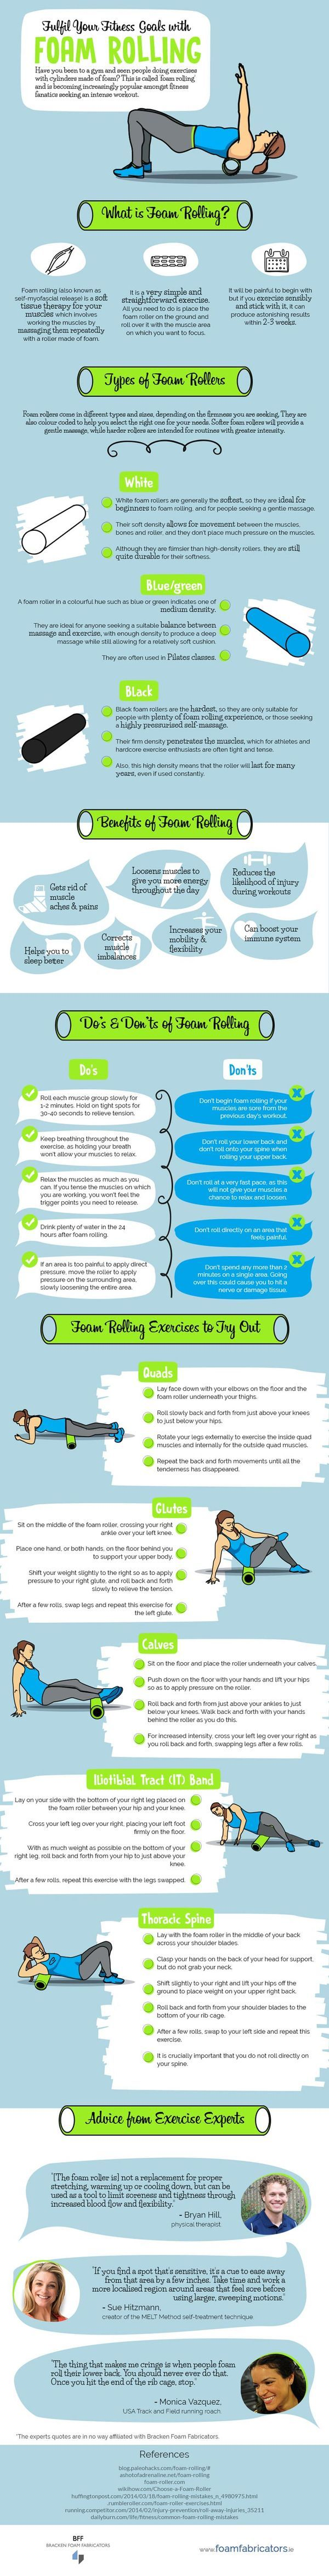 best fitness images on pinterest work outs exercise workouts